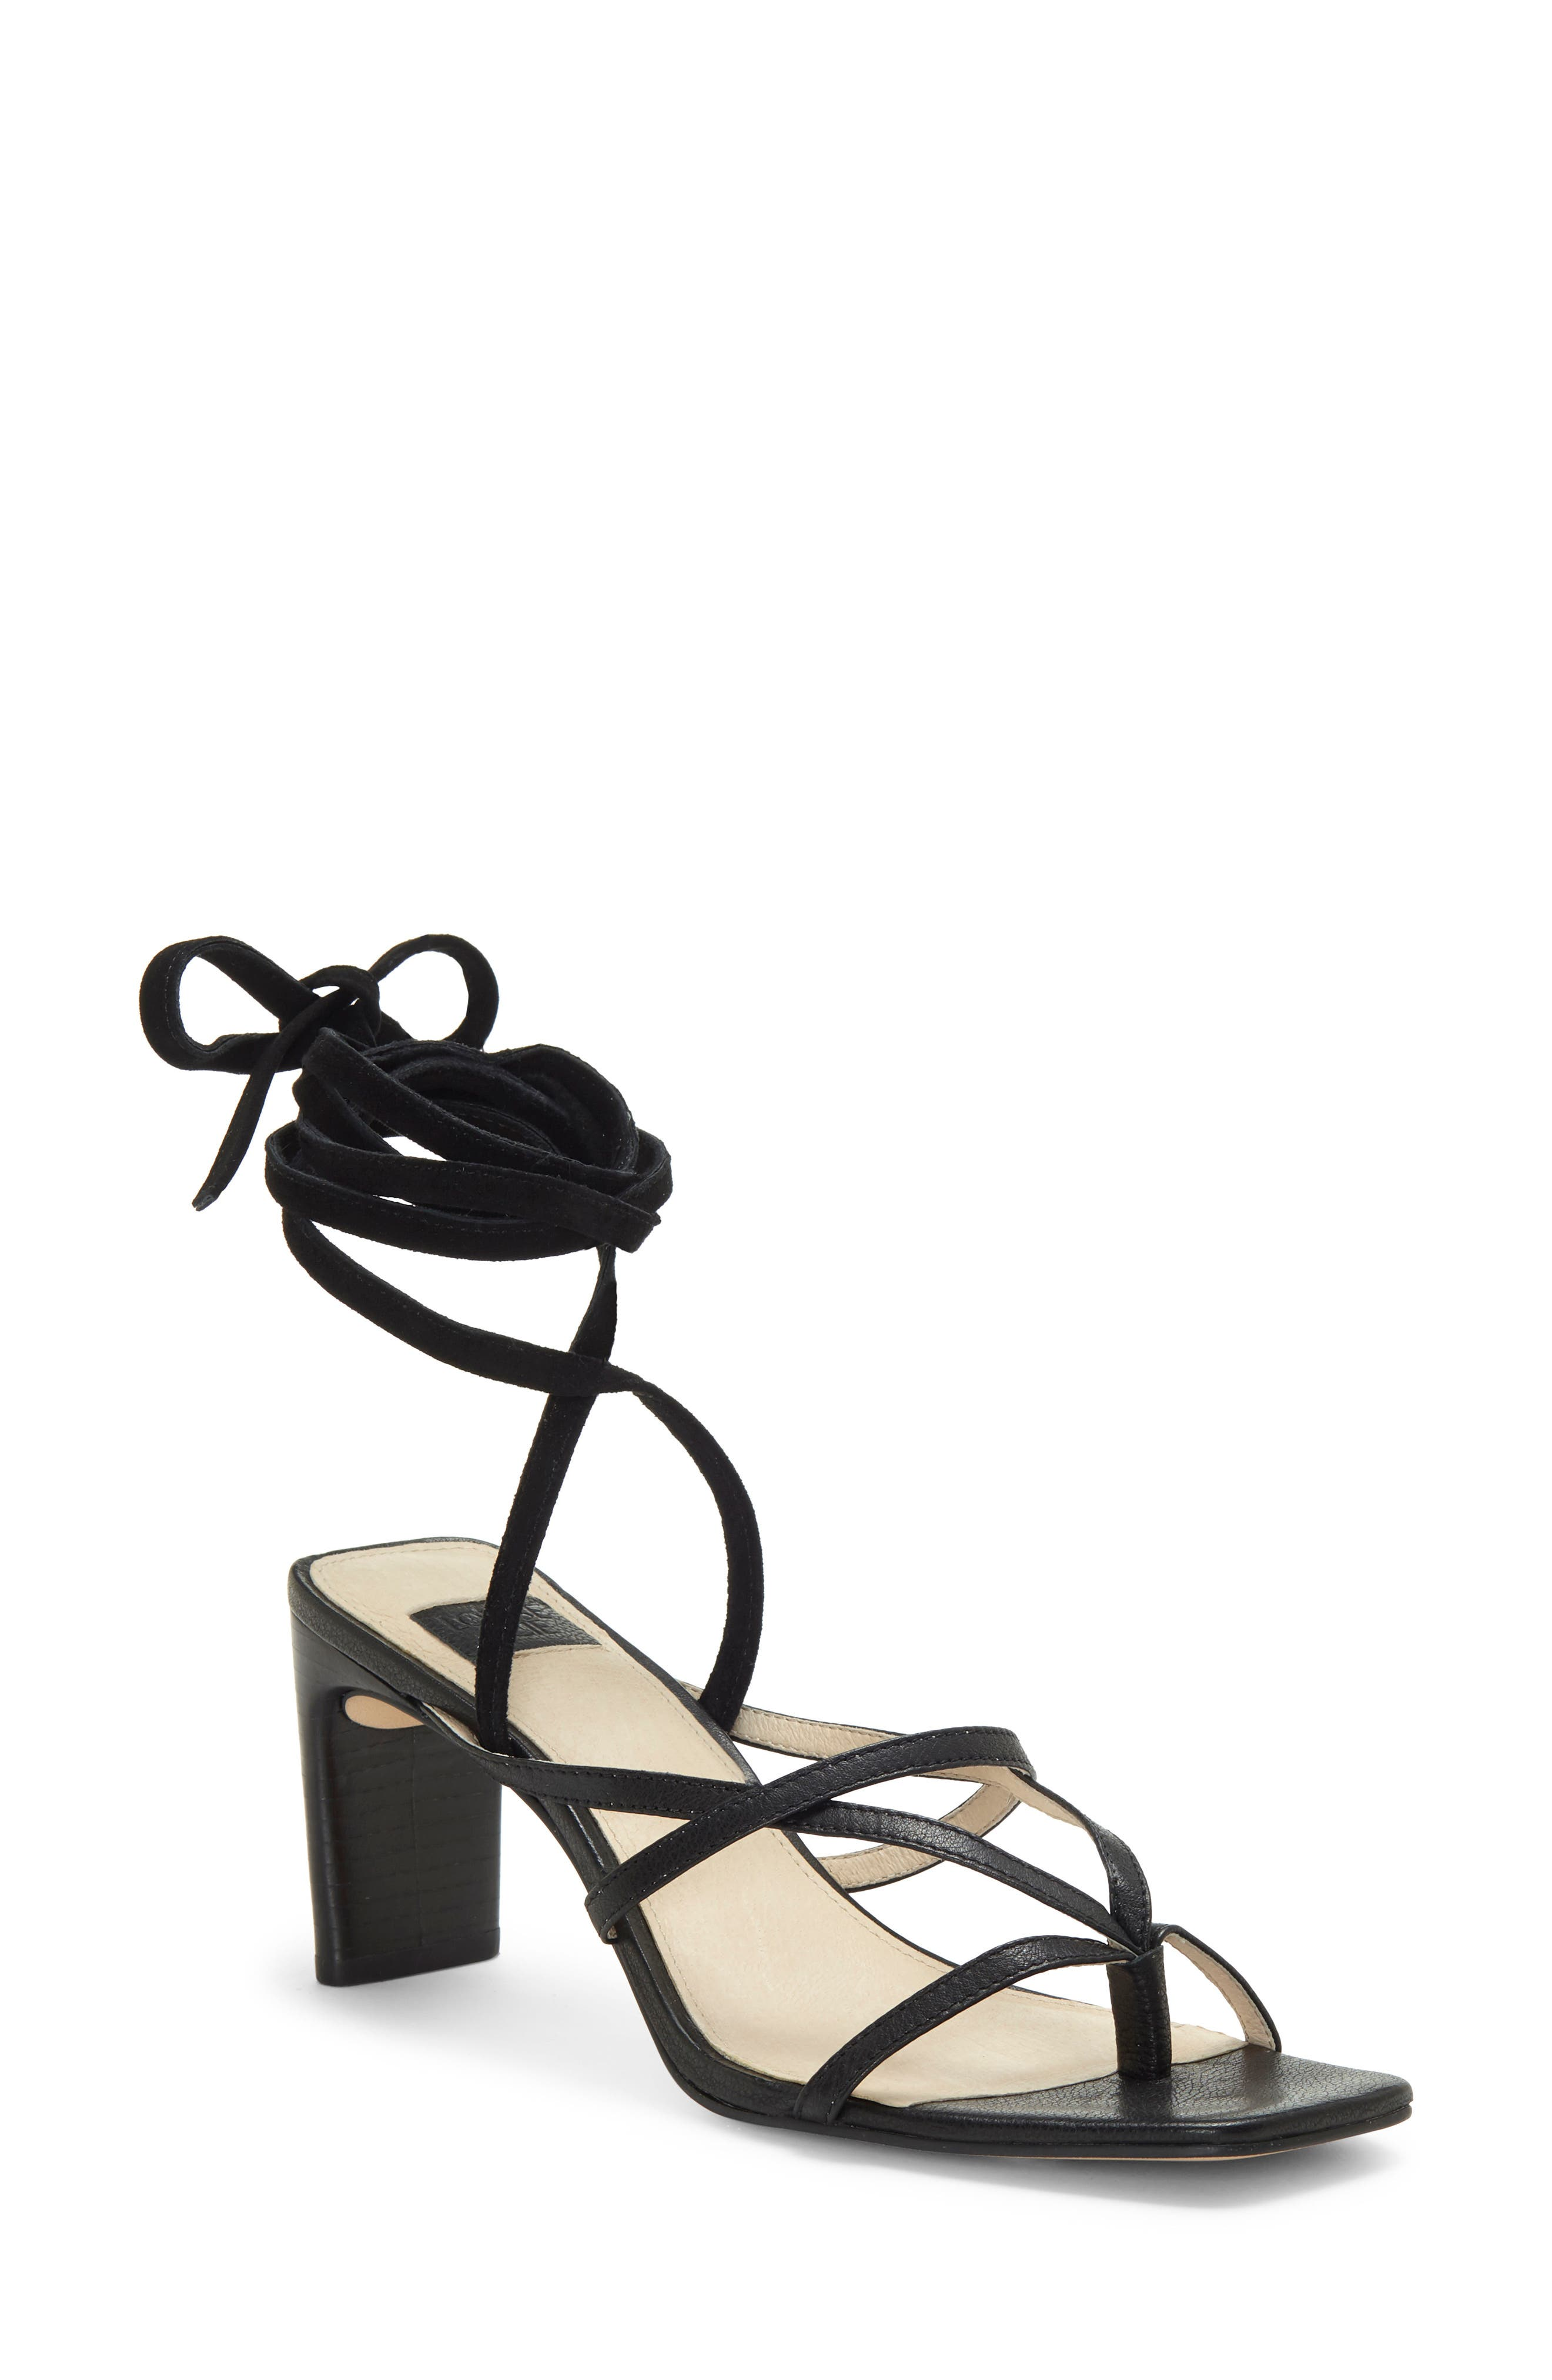 A slim block heel, a squared-off toe and slender straps that wrap the ankle come together on this night out-ready sandal. Style Name: Louise Et Cie Lehana Wraparound Ankle Strap Sandal (Women). Style Number: 6017212. Available in stores.